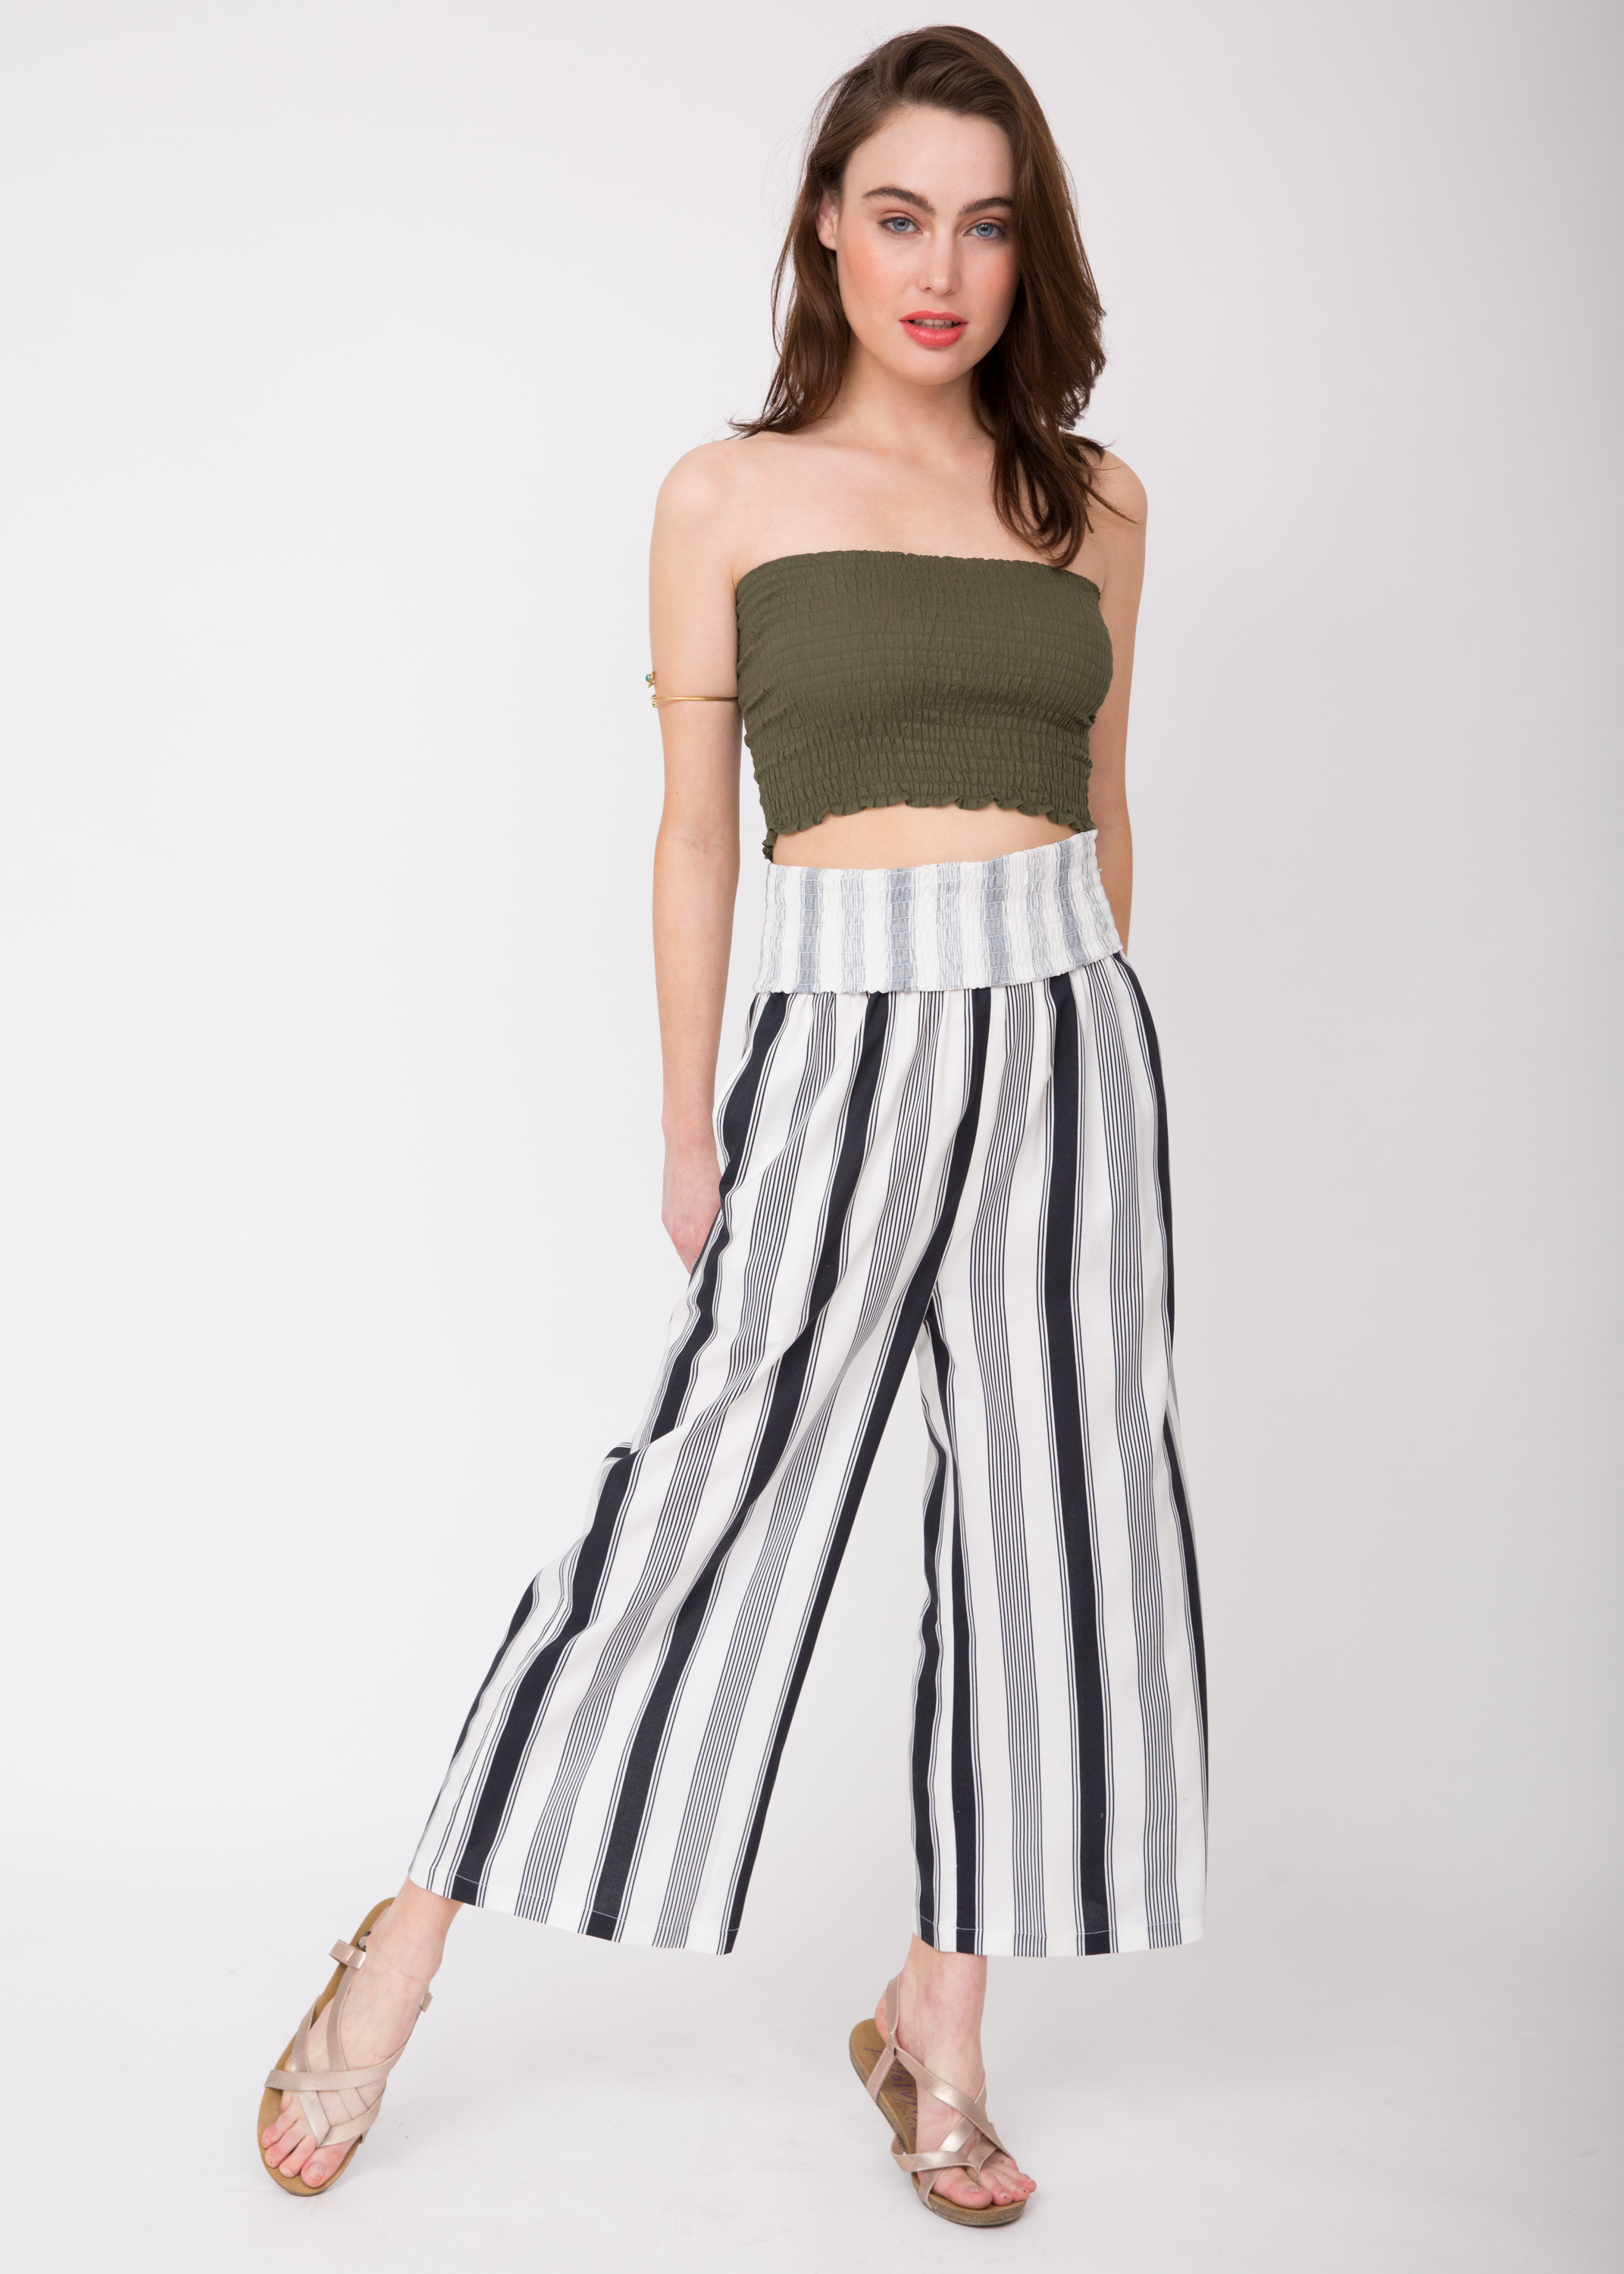 697d2e861cae 2 in 1 Wide Leg Culotte Jumpsuit and Trousers Stripes – likemary